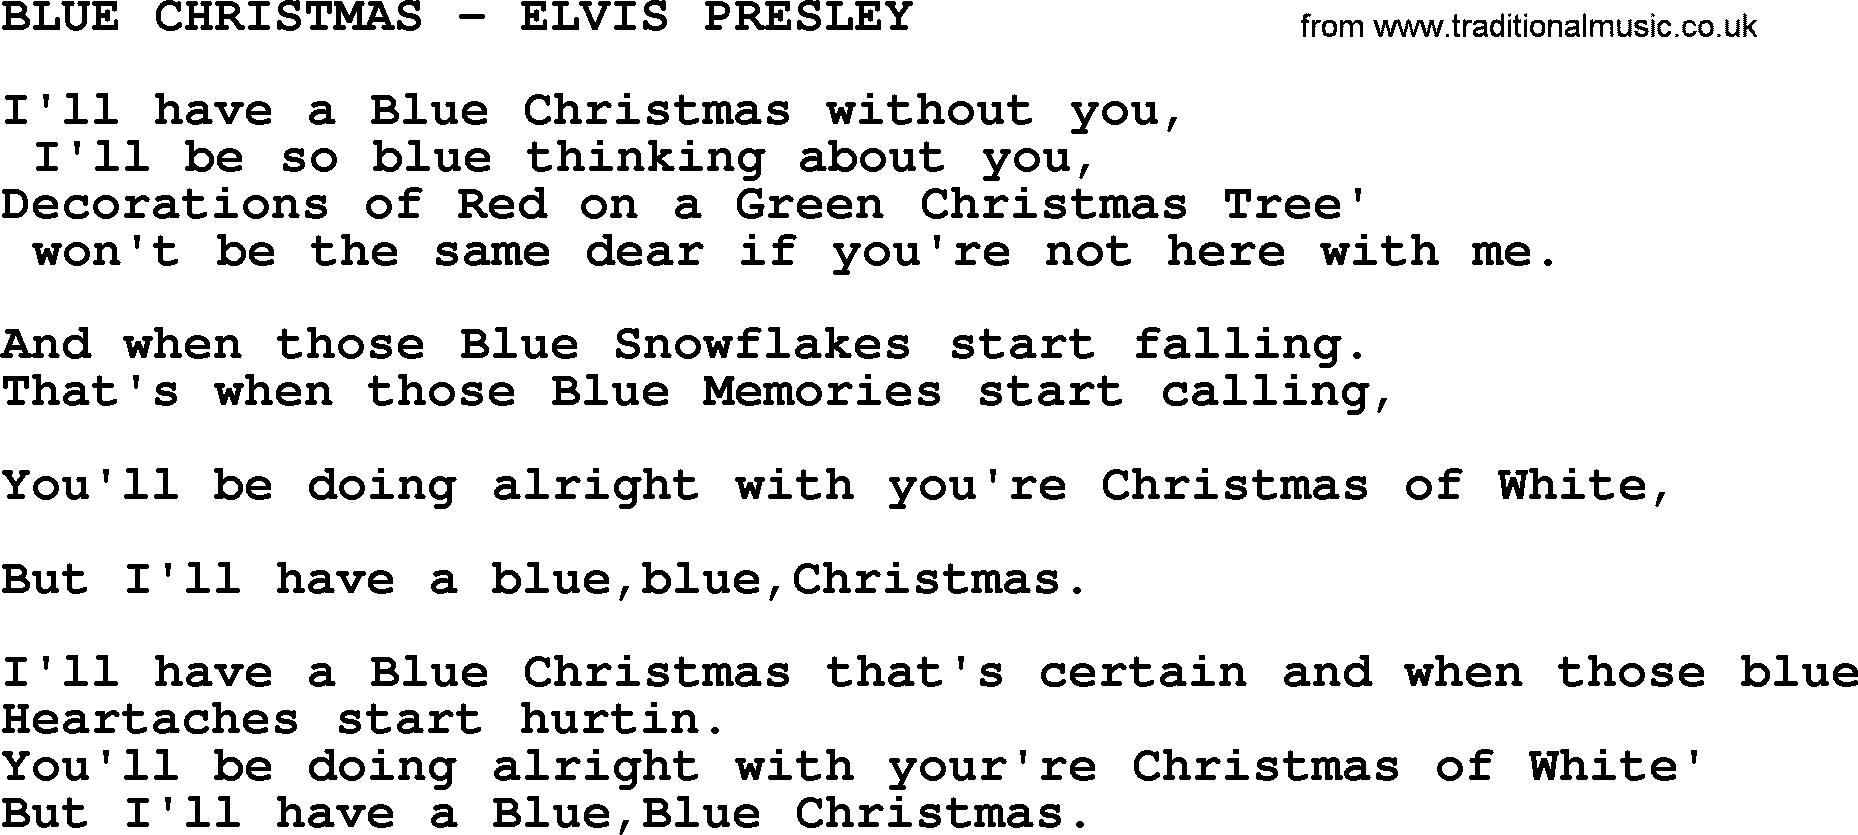 Blue Christmas-Elvis Presley-.txt, by Elvis Presley - lyrics and ...